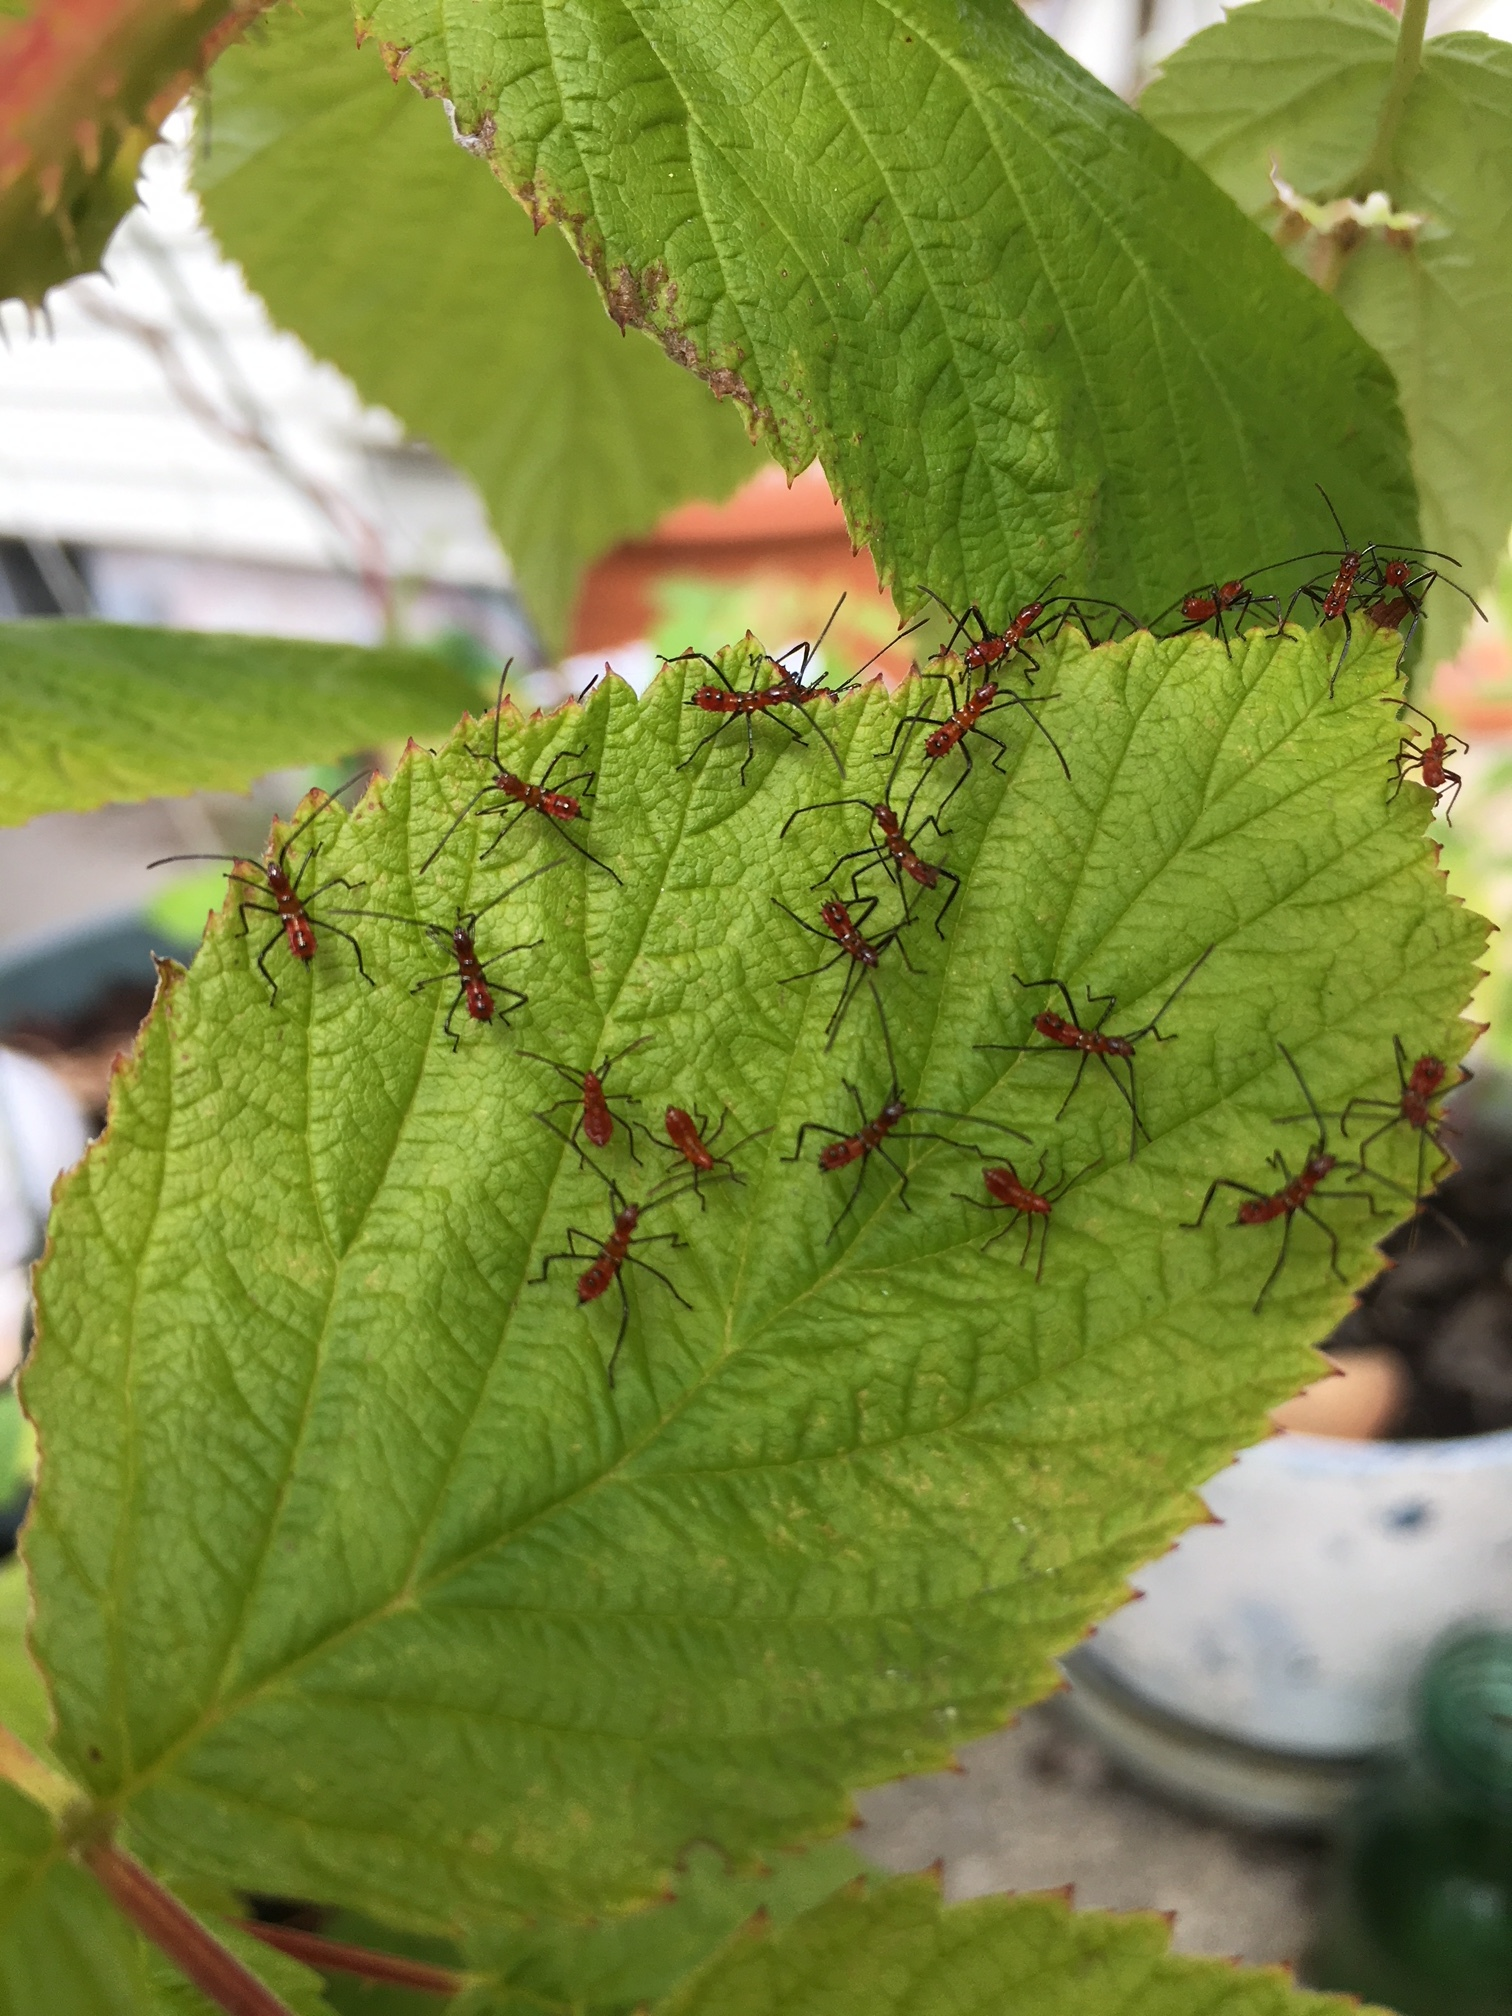 Our raspberries were briefly infested with these little bugs.